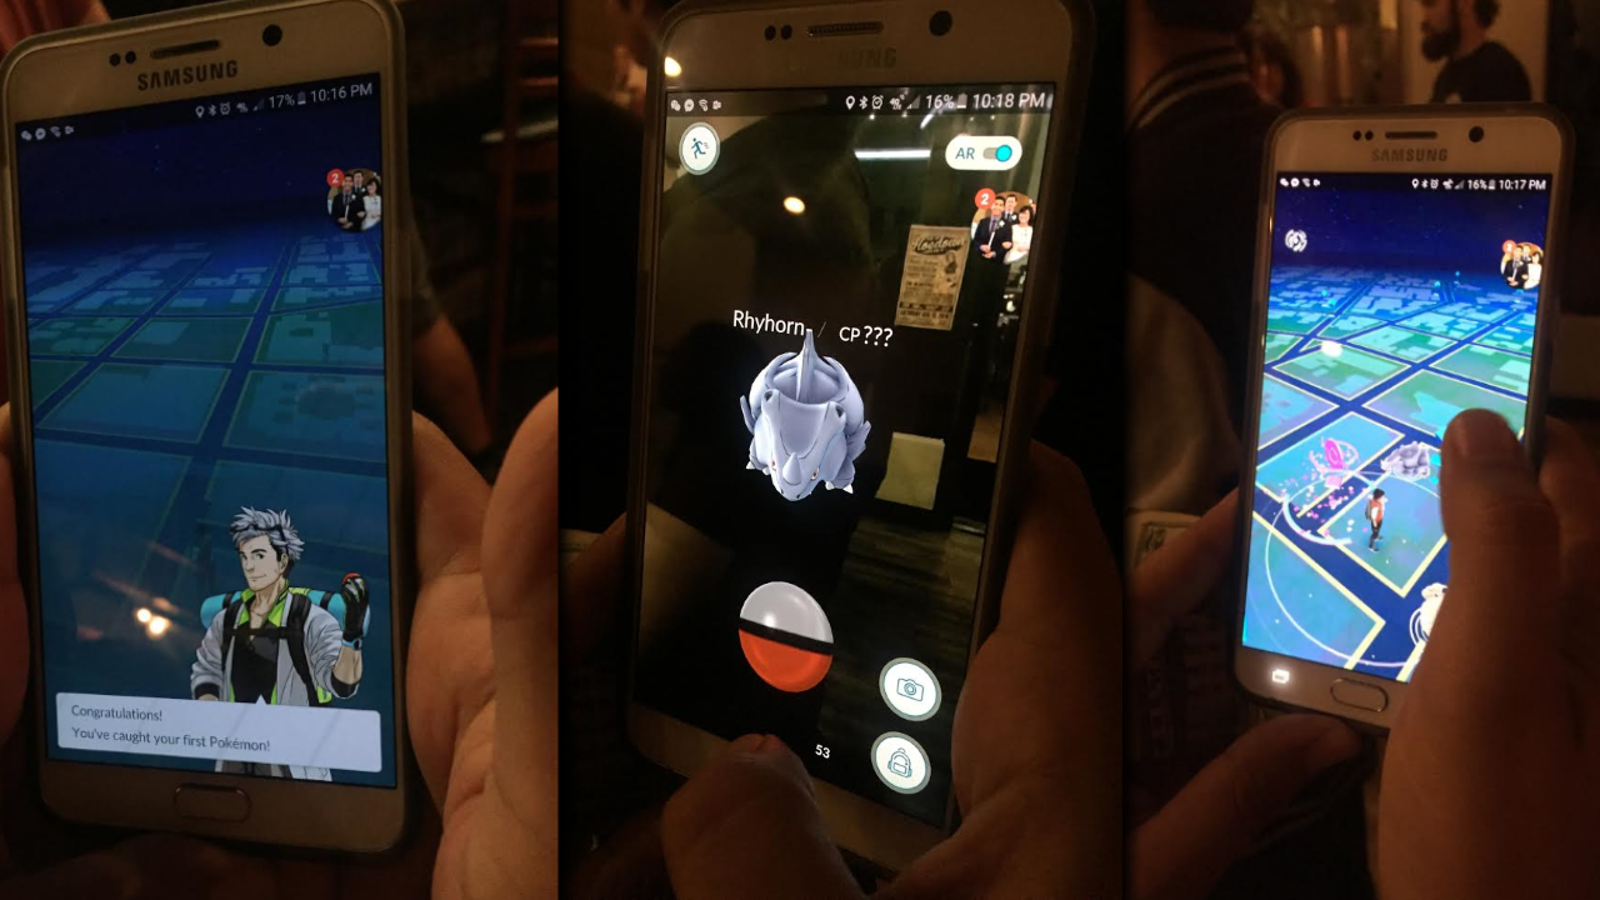 Pokémon Go Update Blocks Root Users, Here's How to Play It